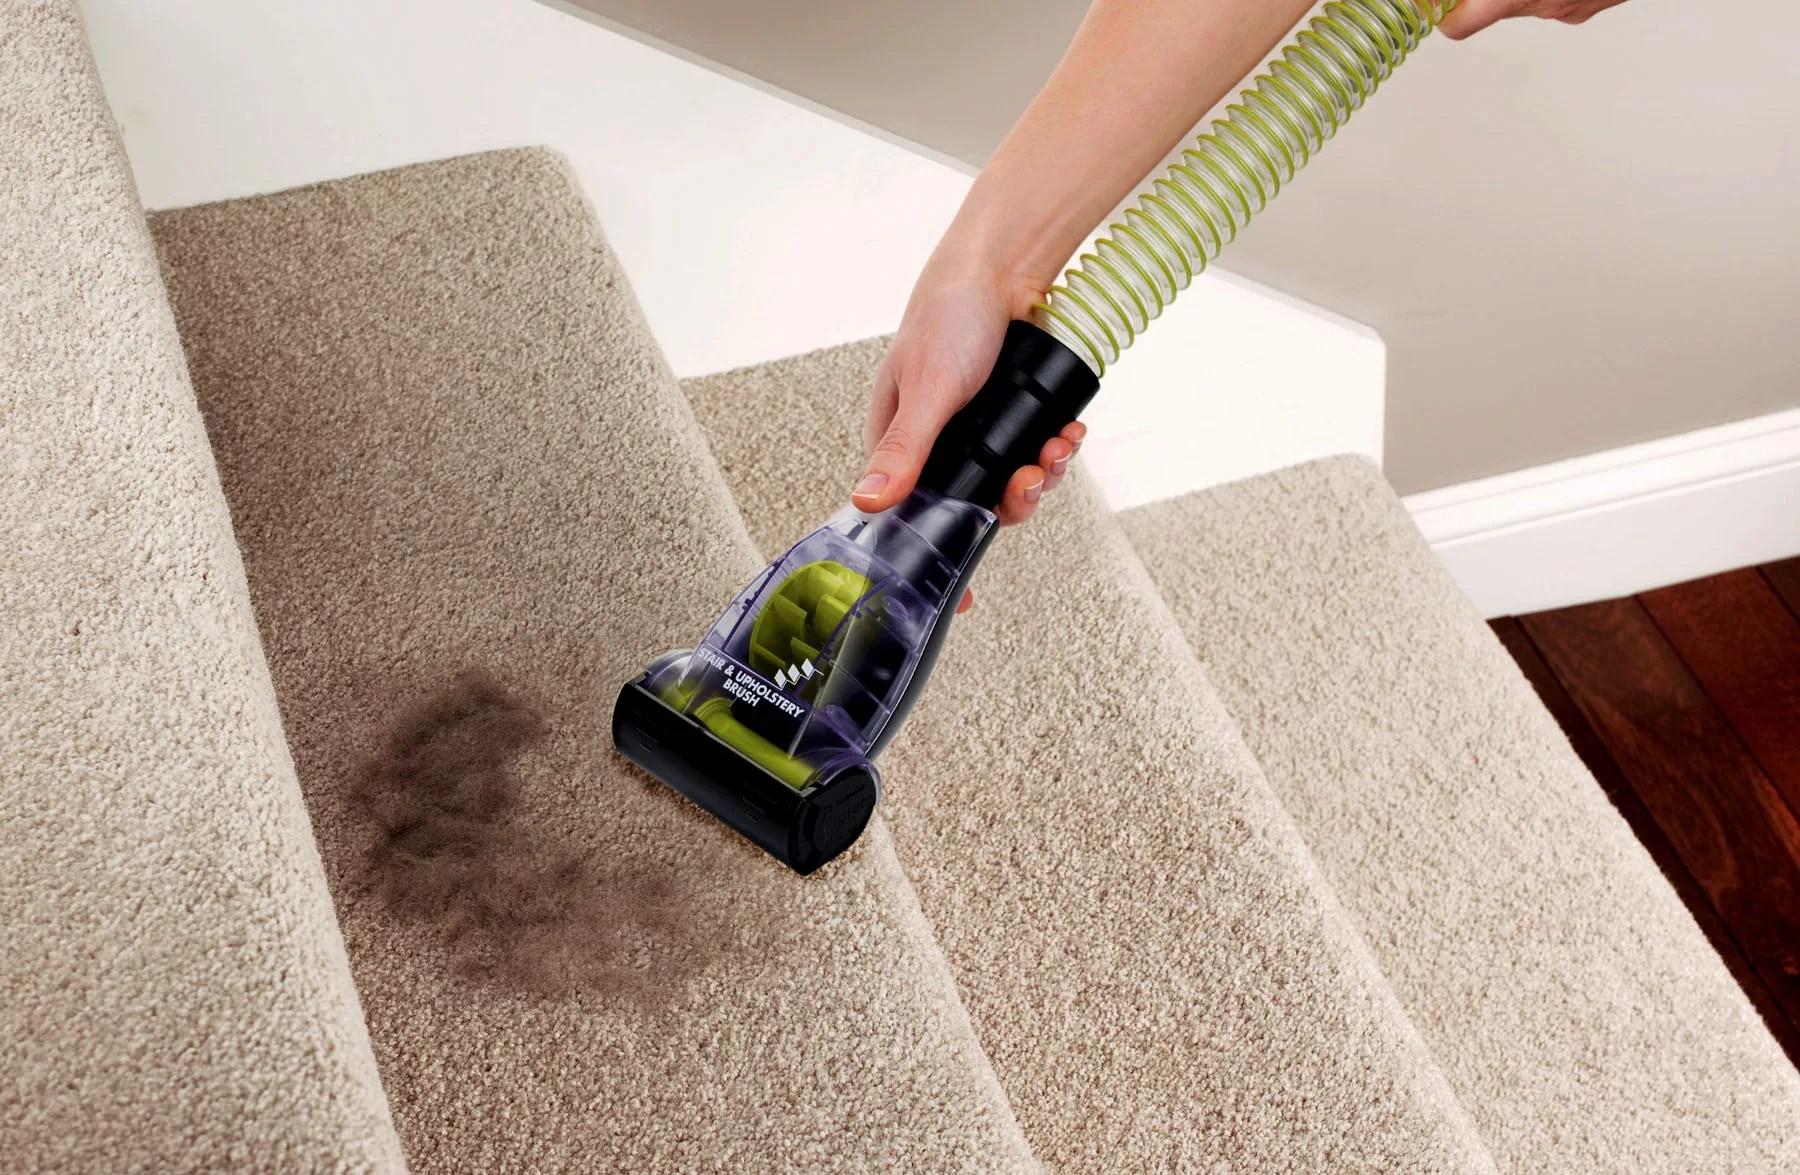 The vacuum should have appropriate tools for surfaces such as carpeted stairs